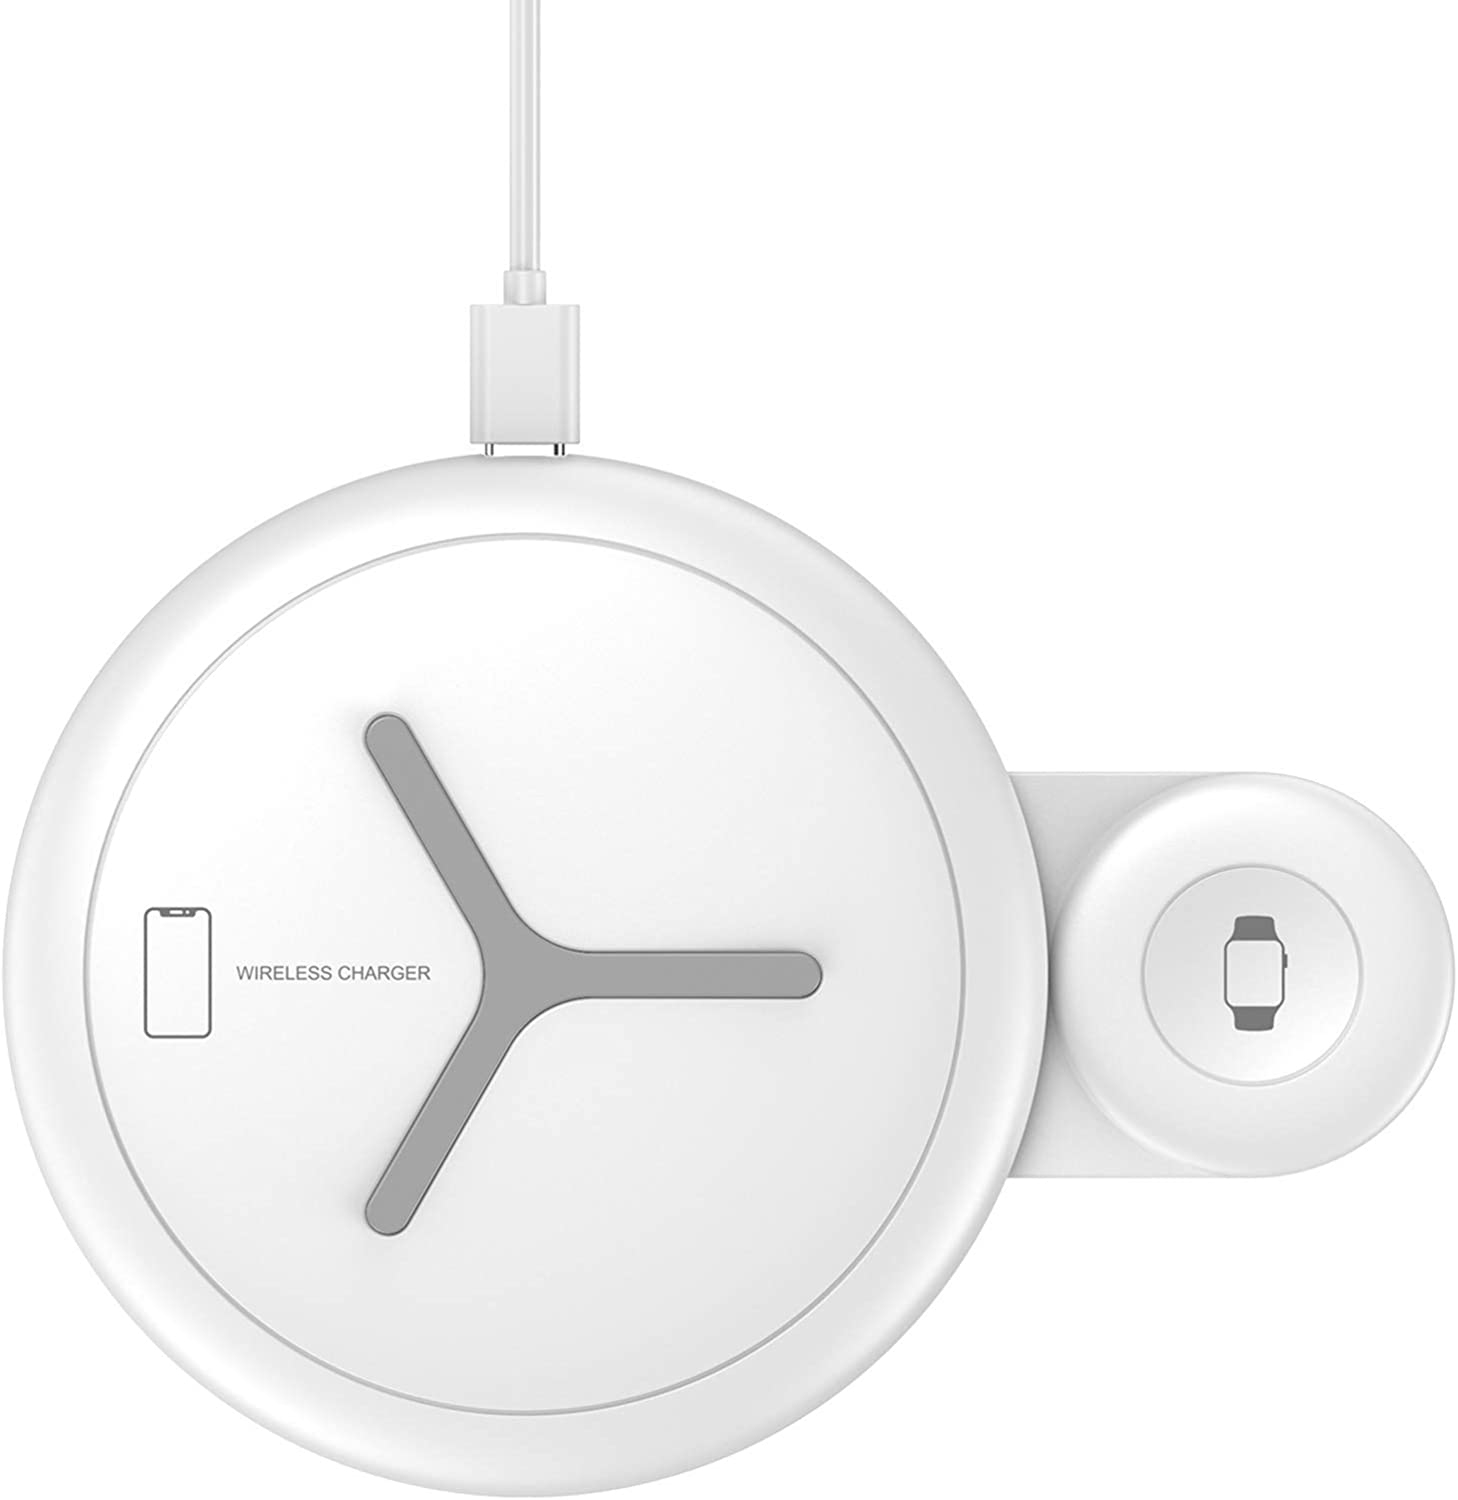 Nalwort 2 in 1 Wireless Charger Compatible with iPhone Apple Watch and AirPods Qi Charger Wireless Charging Station for iPhone 12/11 Series, iWatch 6/SE/5/4/3/2/1, AirPods 2/Pro(No Adapter) (White)